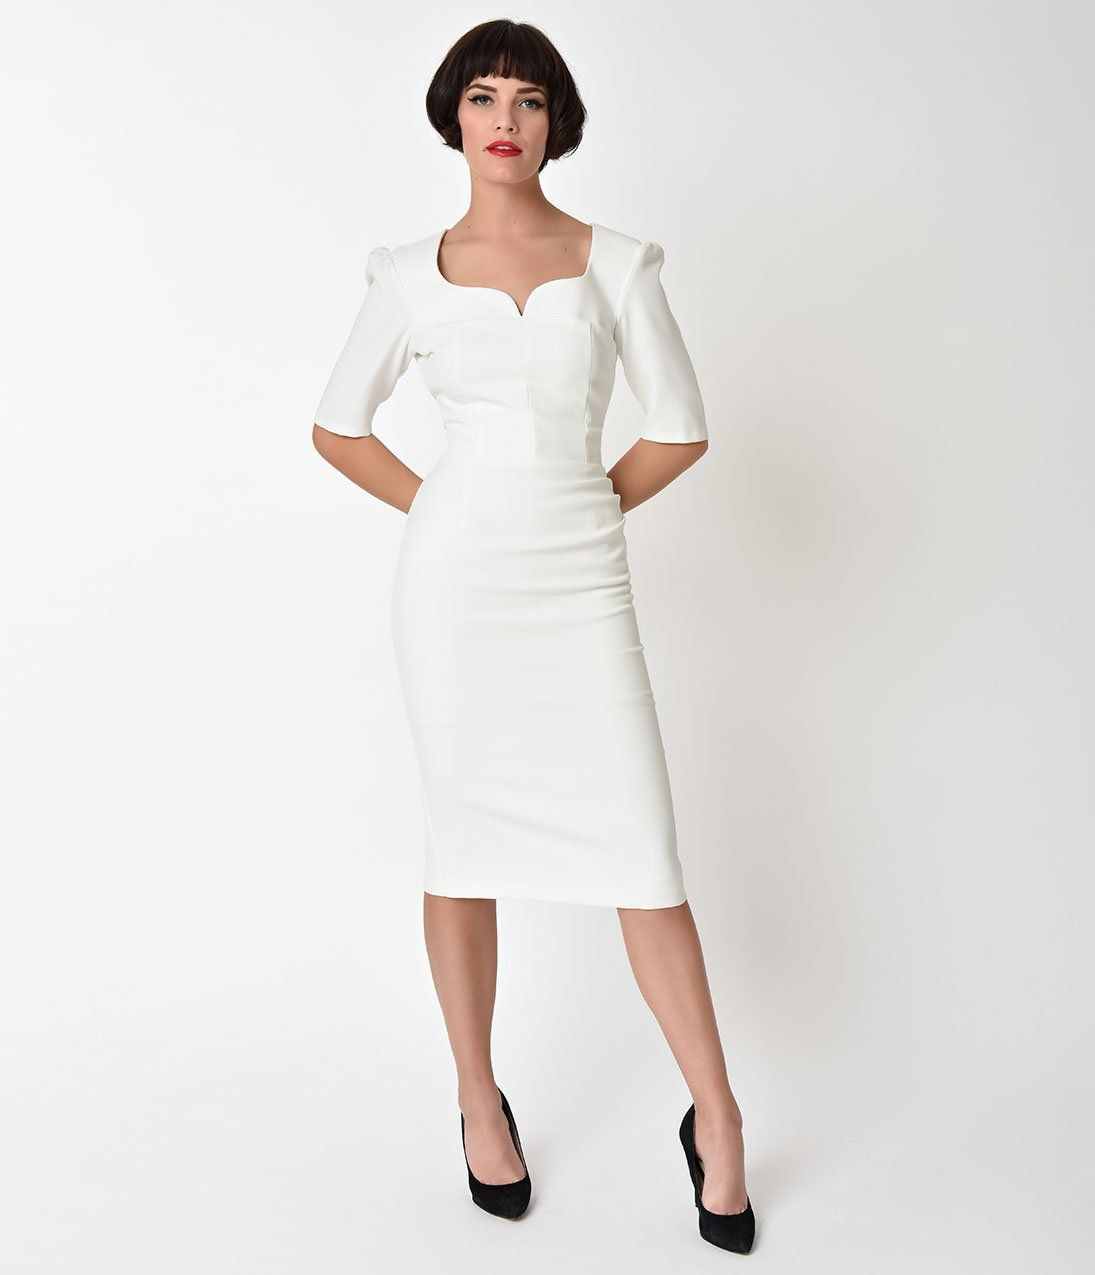 The Pretty Dress Company Ivory Sleeved Charlotte Pencil Unique Vintage Chic Wedding